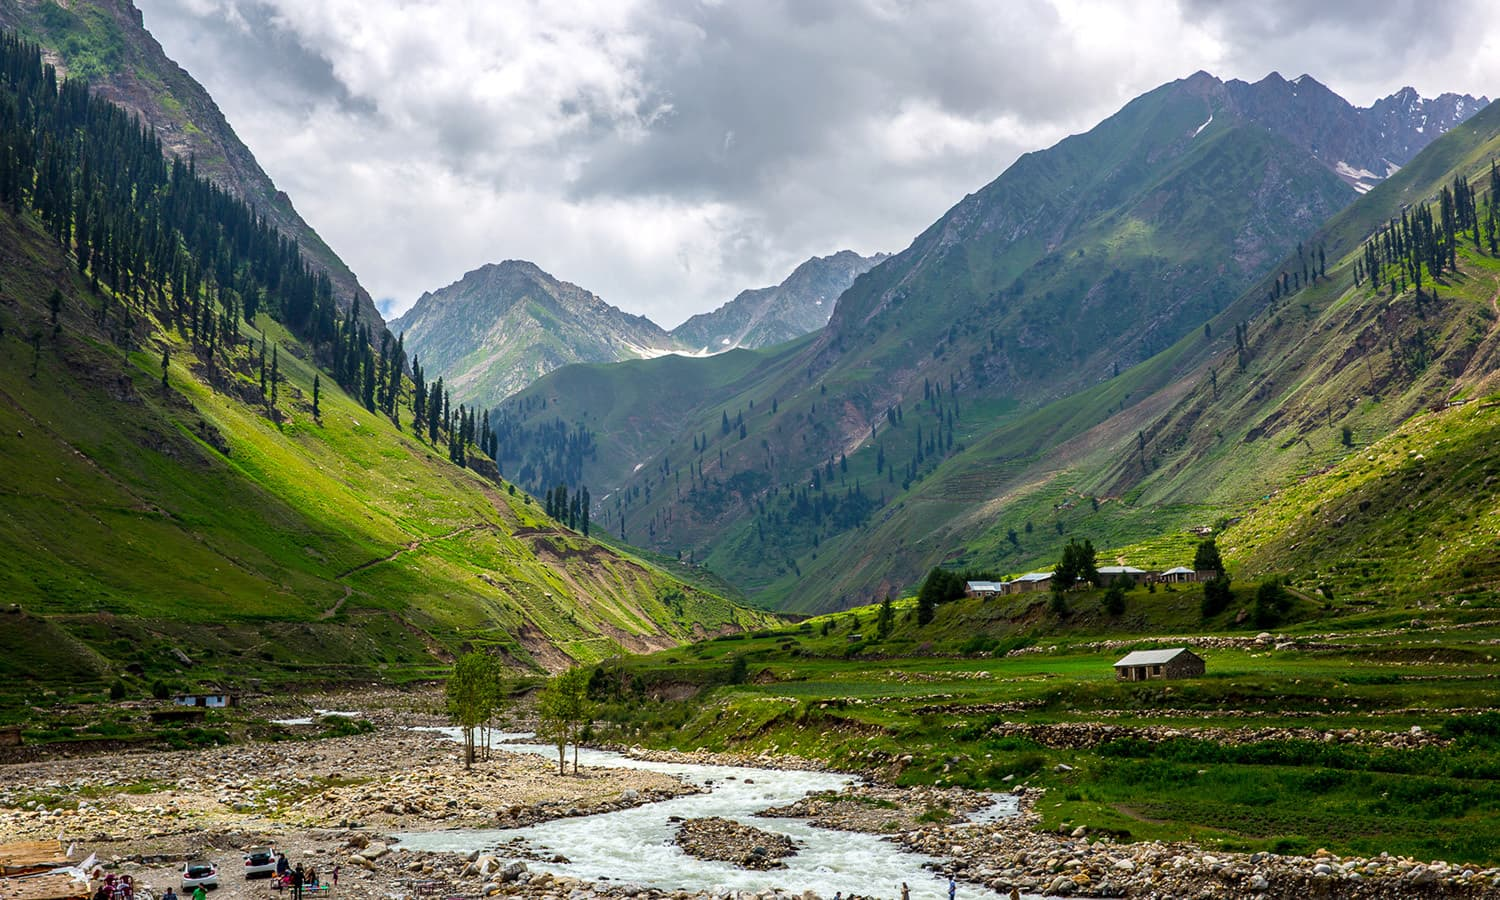 Burawai near Naran. ─ Photo by Ghulam Murtaza